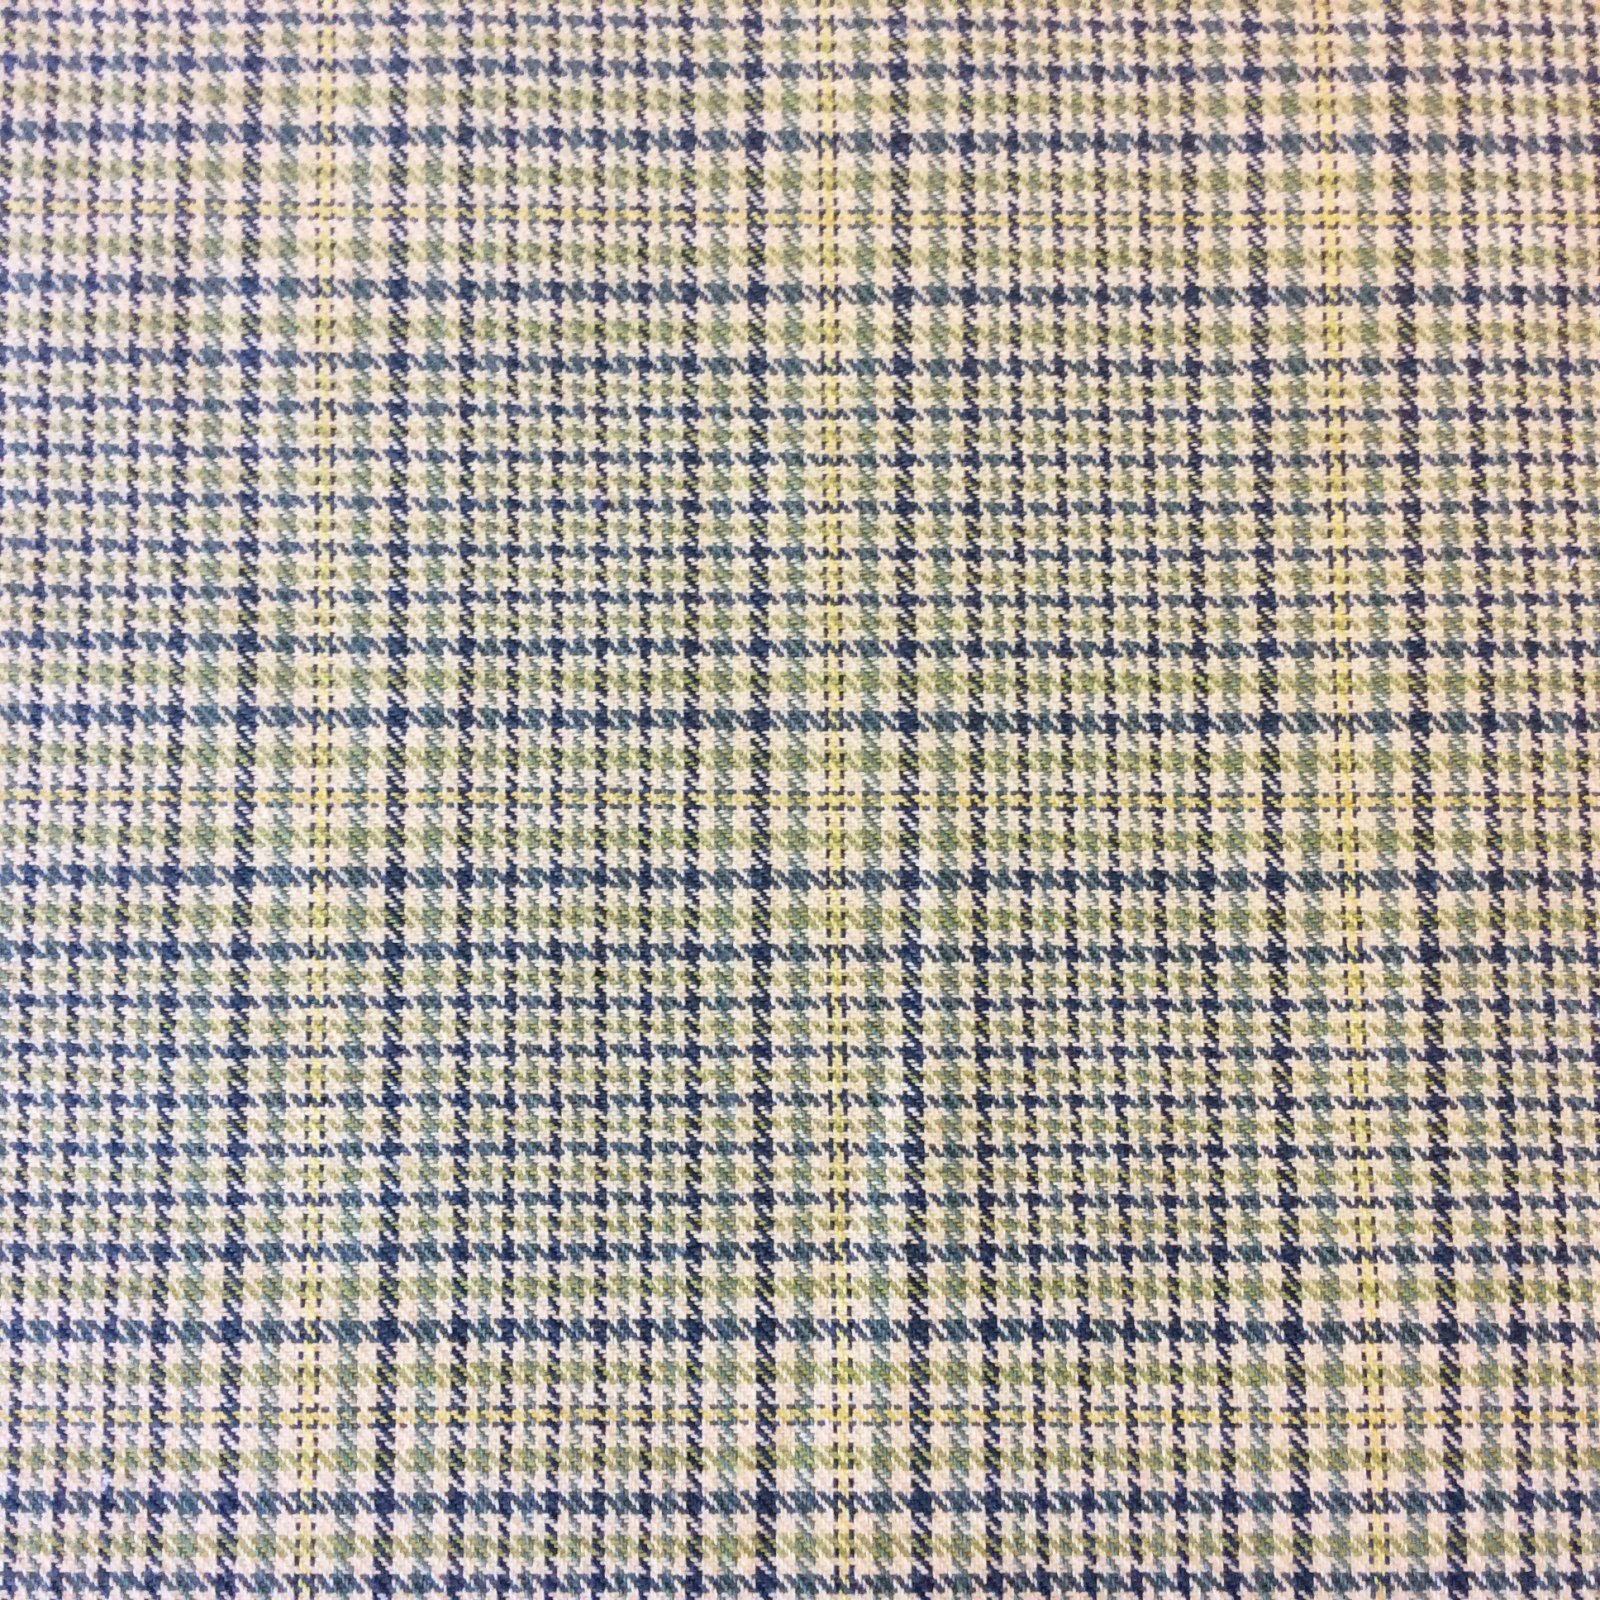 Plaid Classic Lagoon Houndstooth Plaid Geo Grid Upholstery Home Decor Fabric LHD210